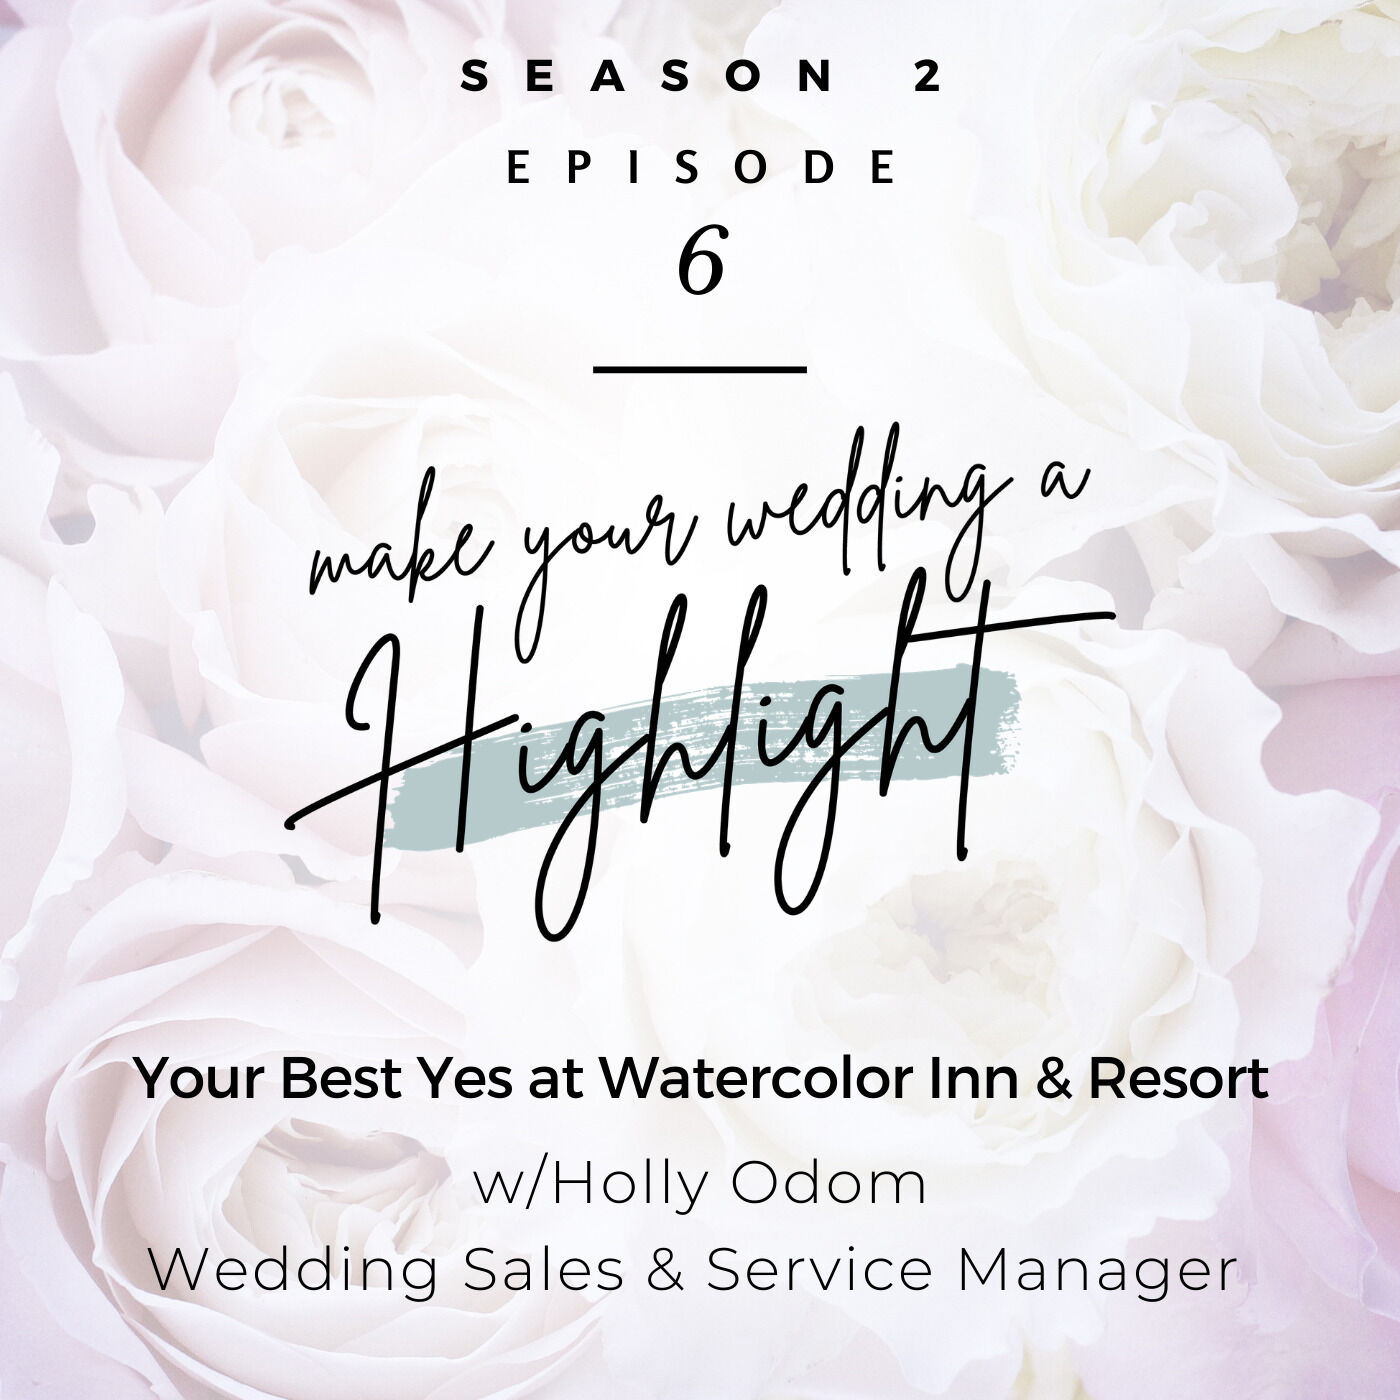 Your Best Yes At Watercolor Inn & Resort